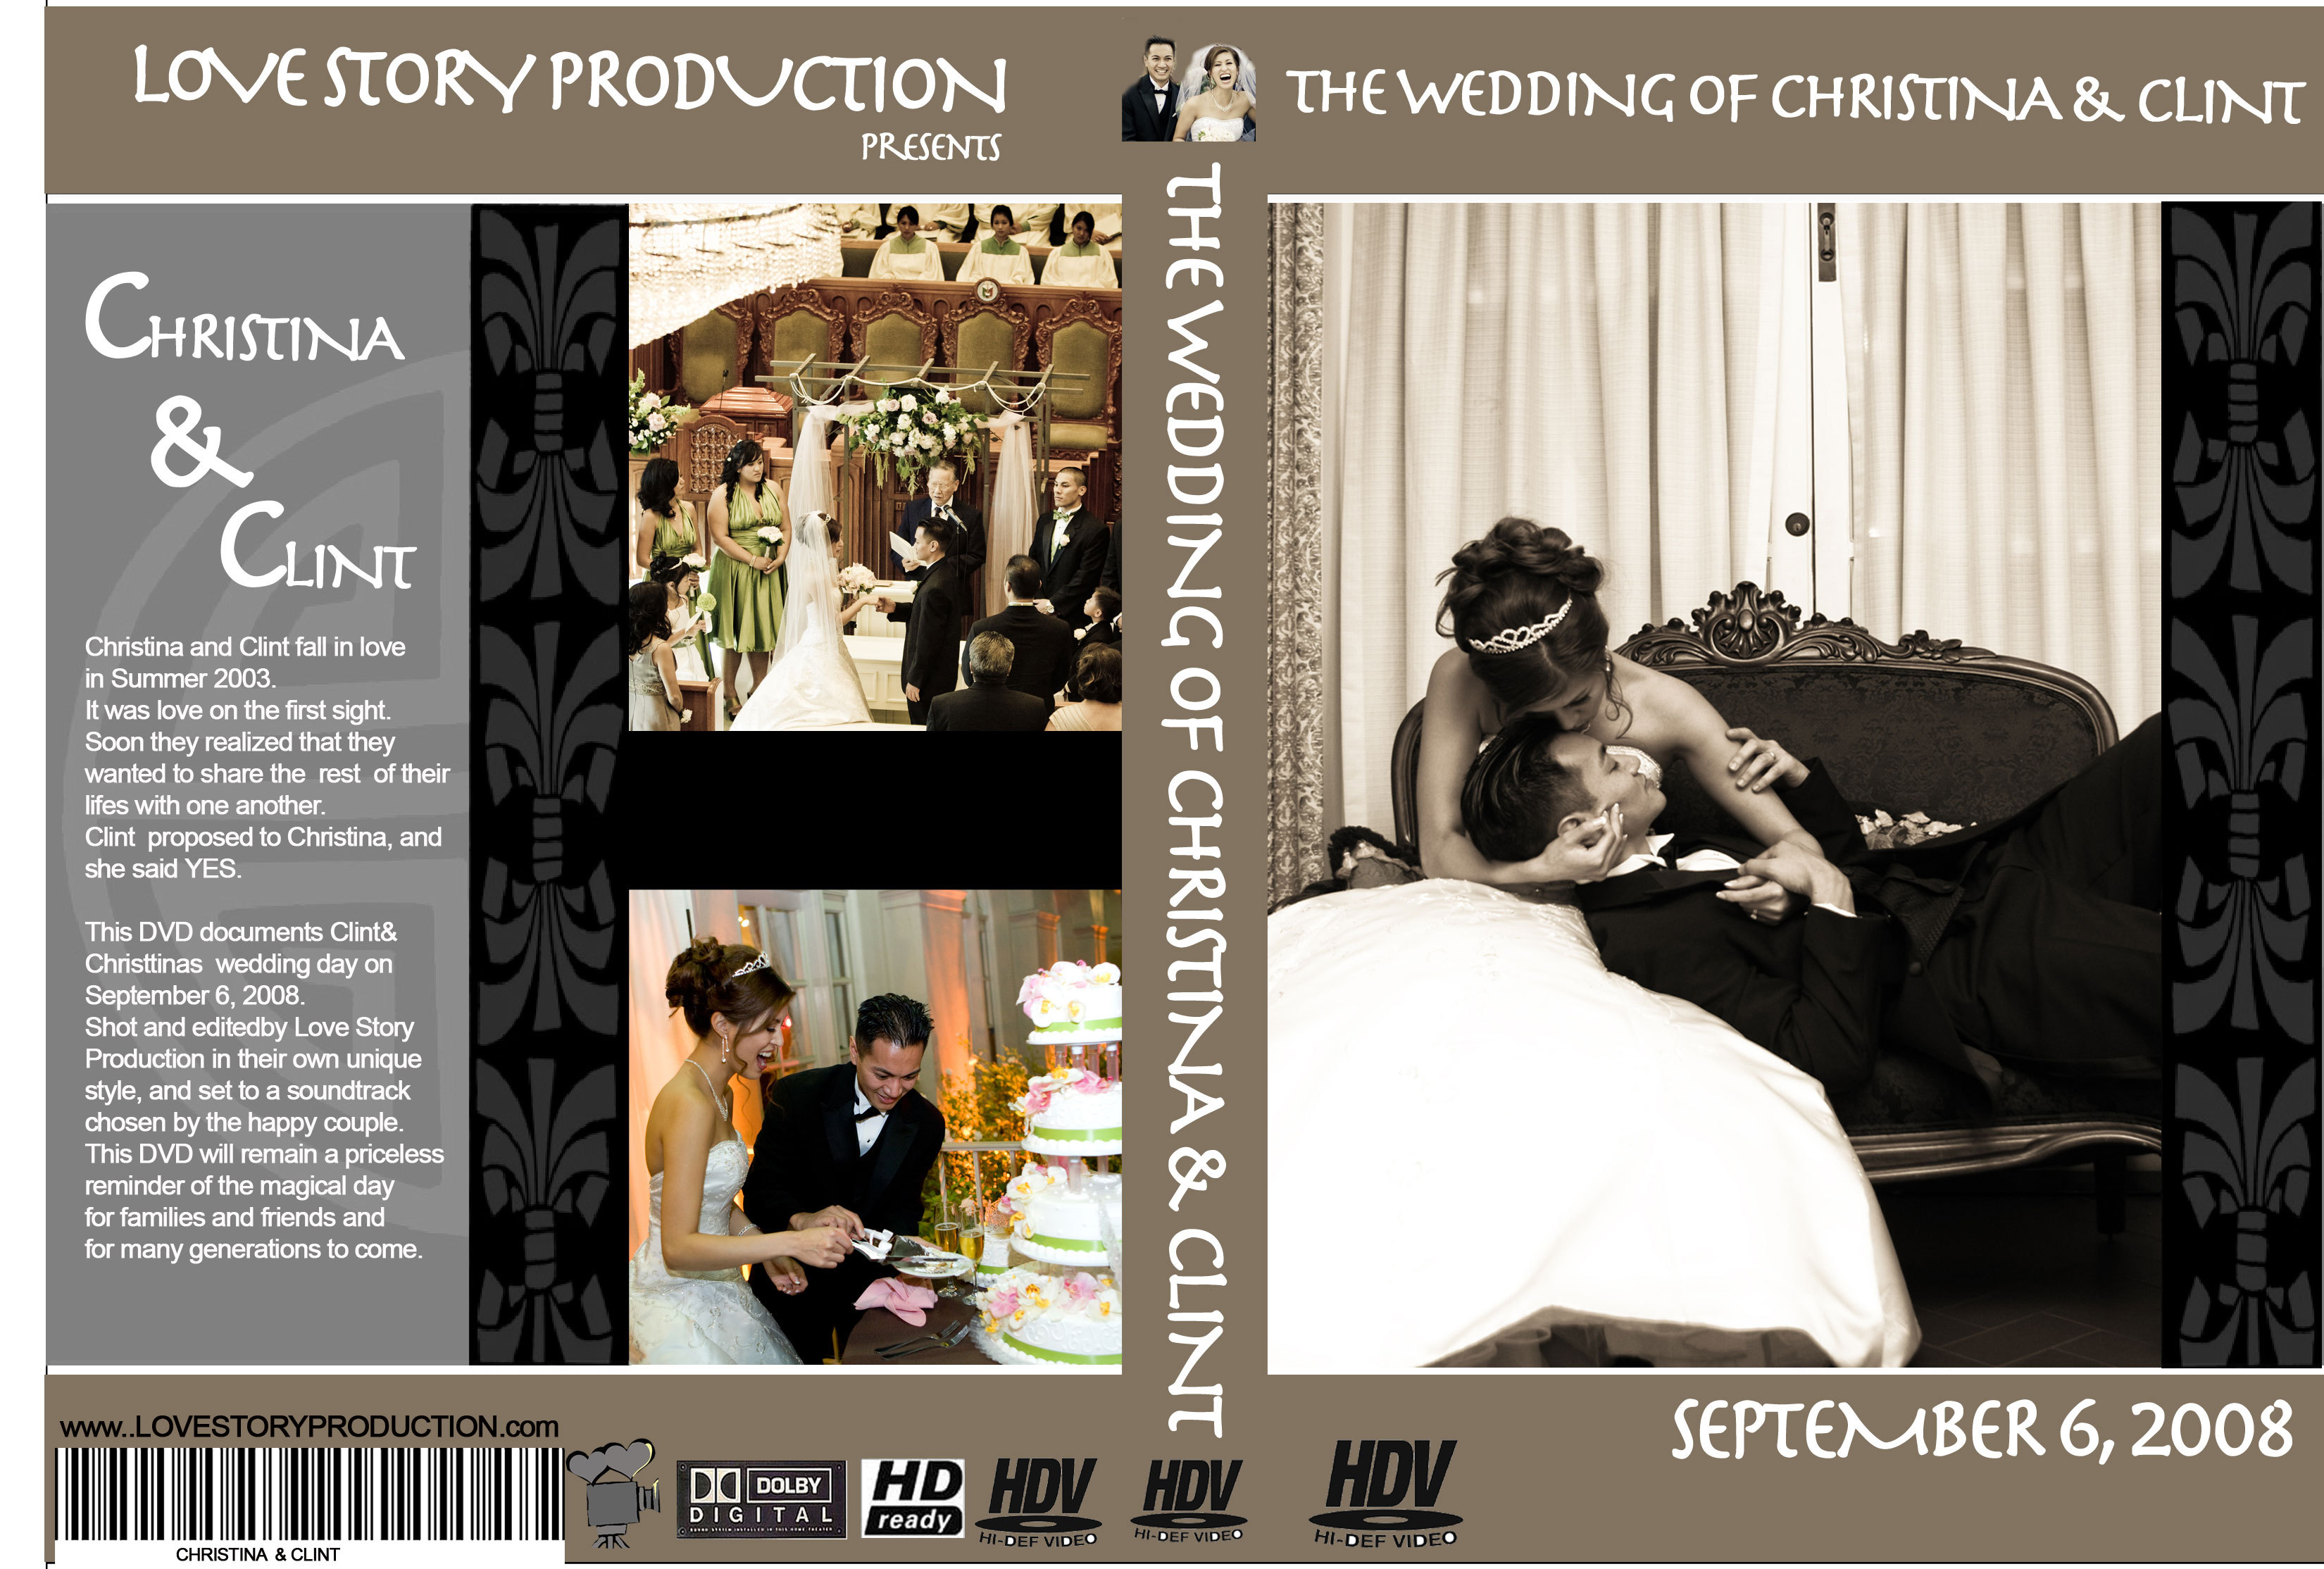 And, Chinese, Cover, A, Style, Or, Dvd, Poster, Love story production, Lovestoryproduction